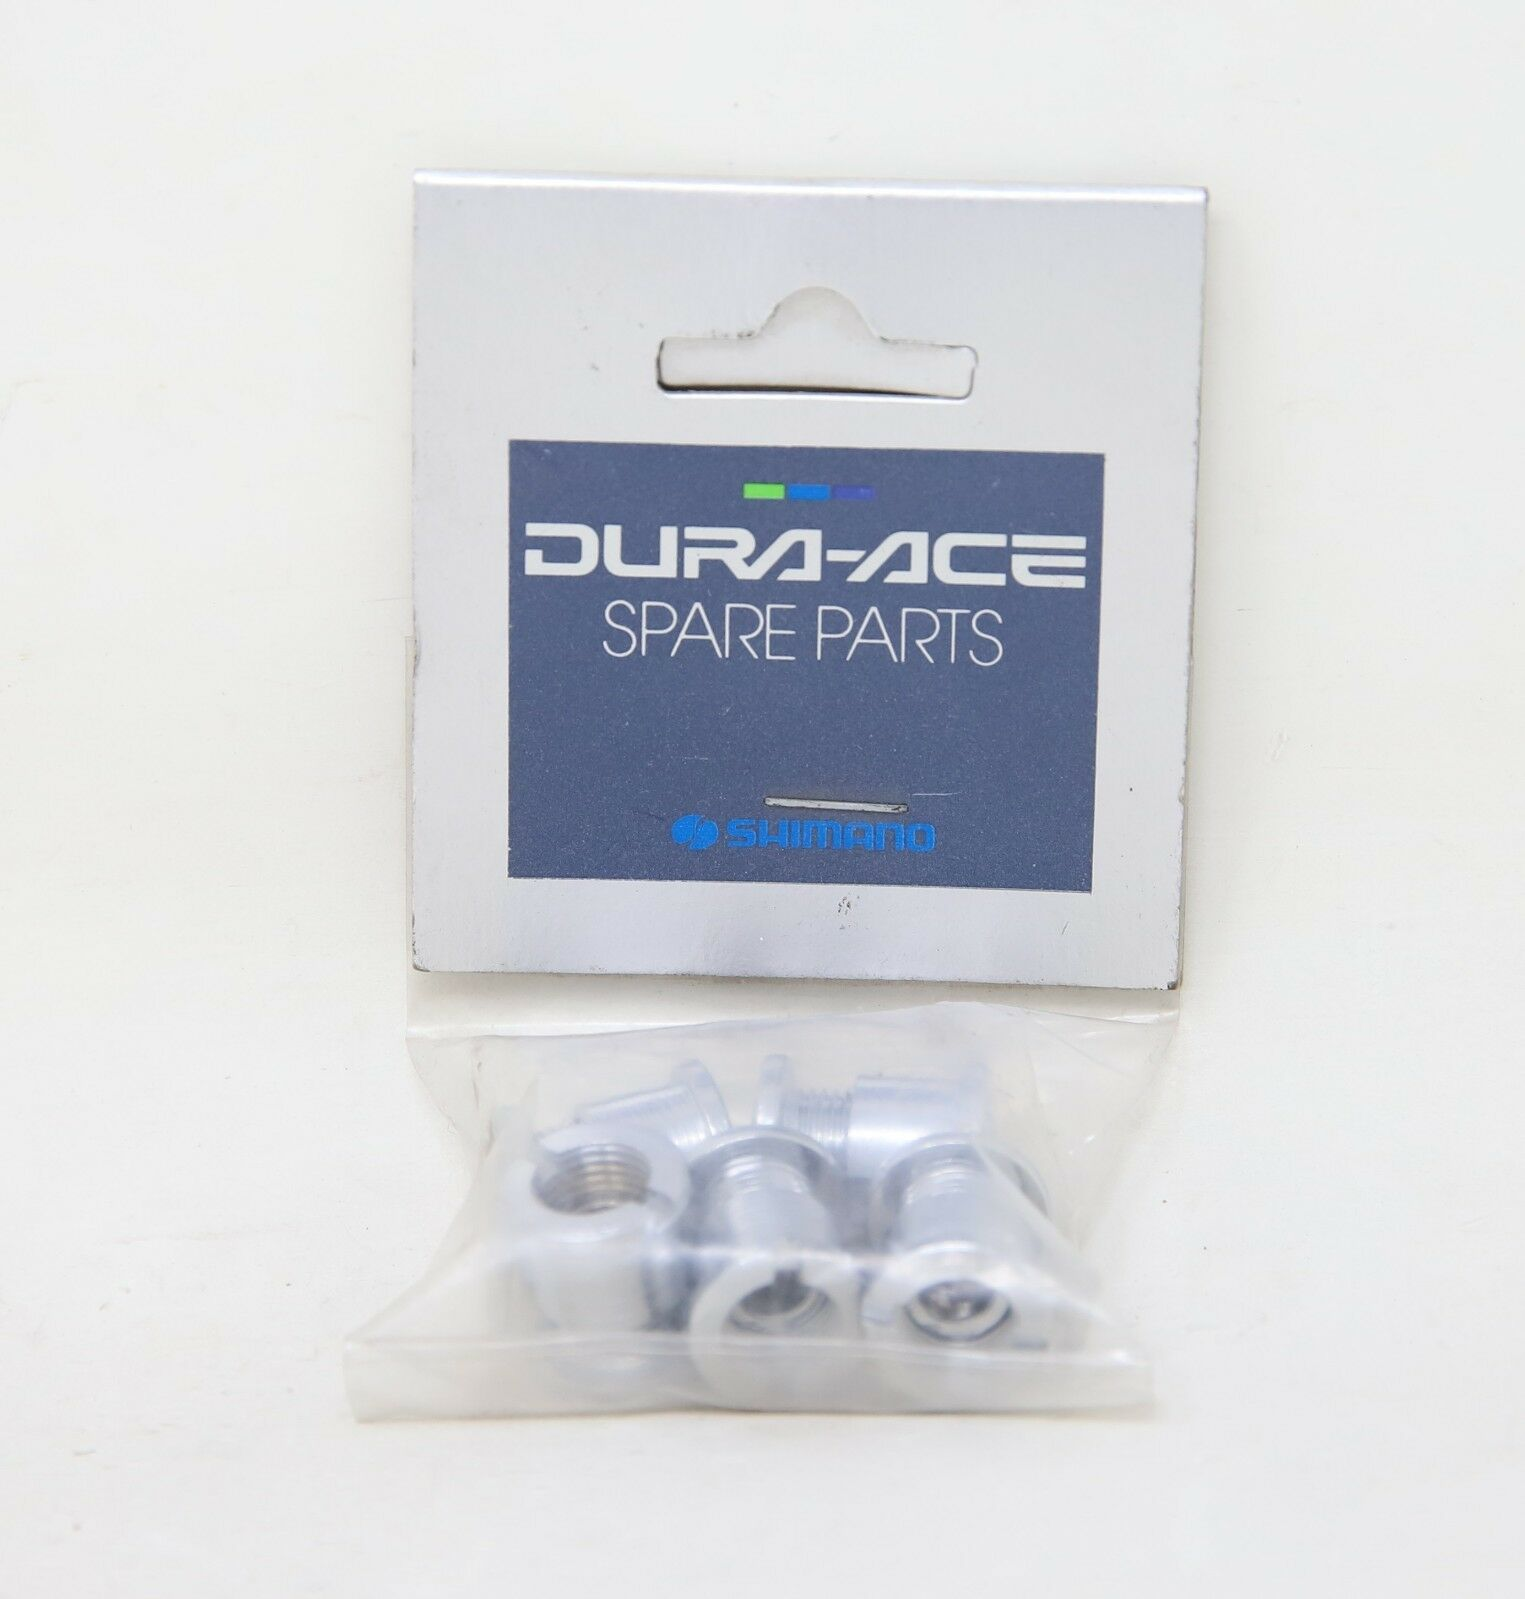 NOS SHIMANO DURA-ACE 7400 CRANKSET BOLTS SET OF 5  80S 90S VINTAGE  save up to 70%